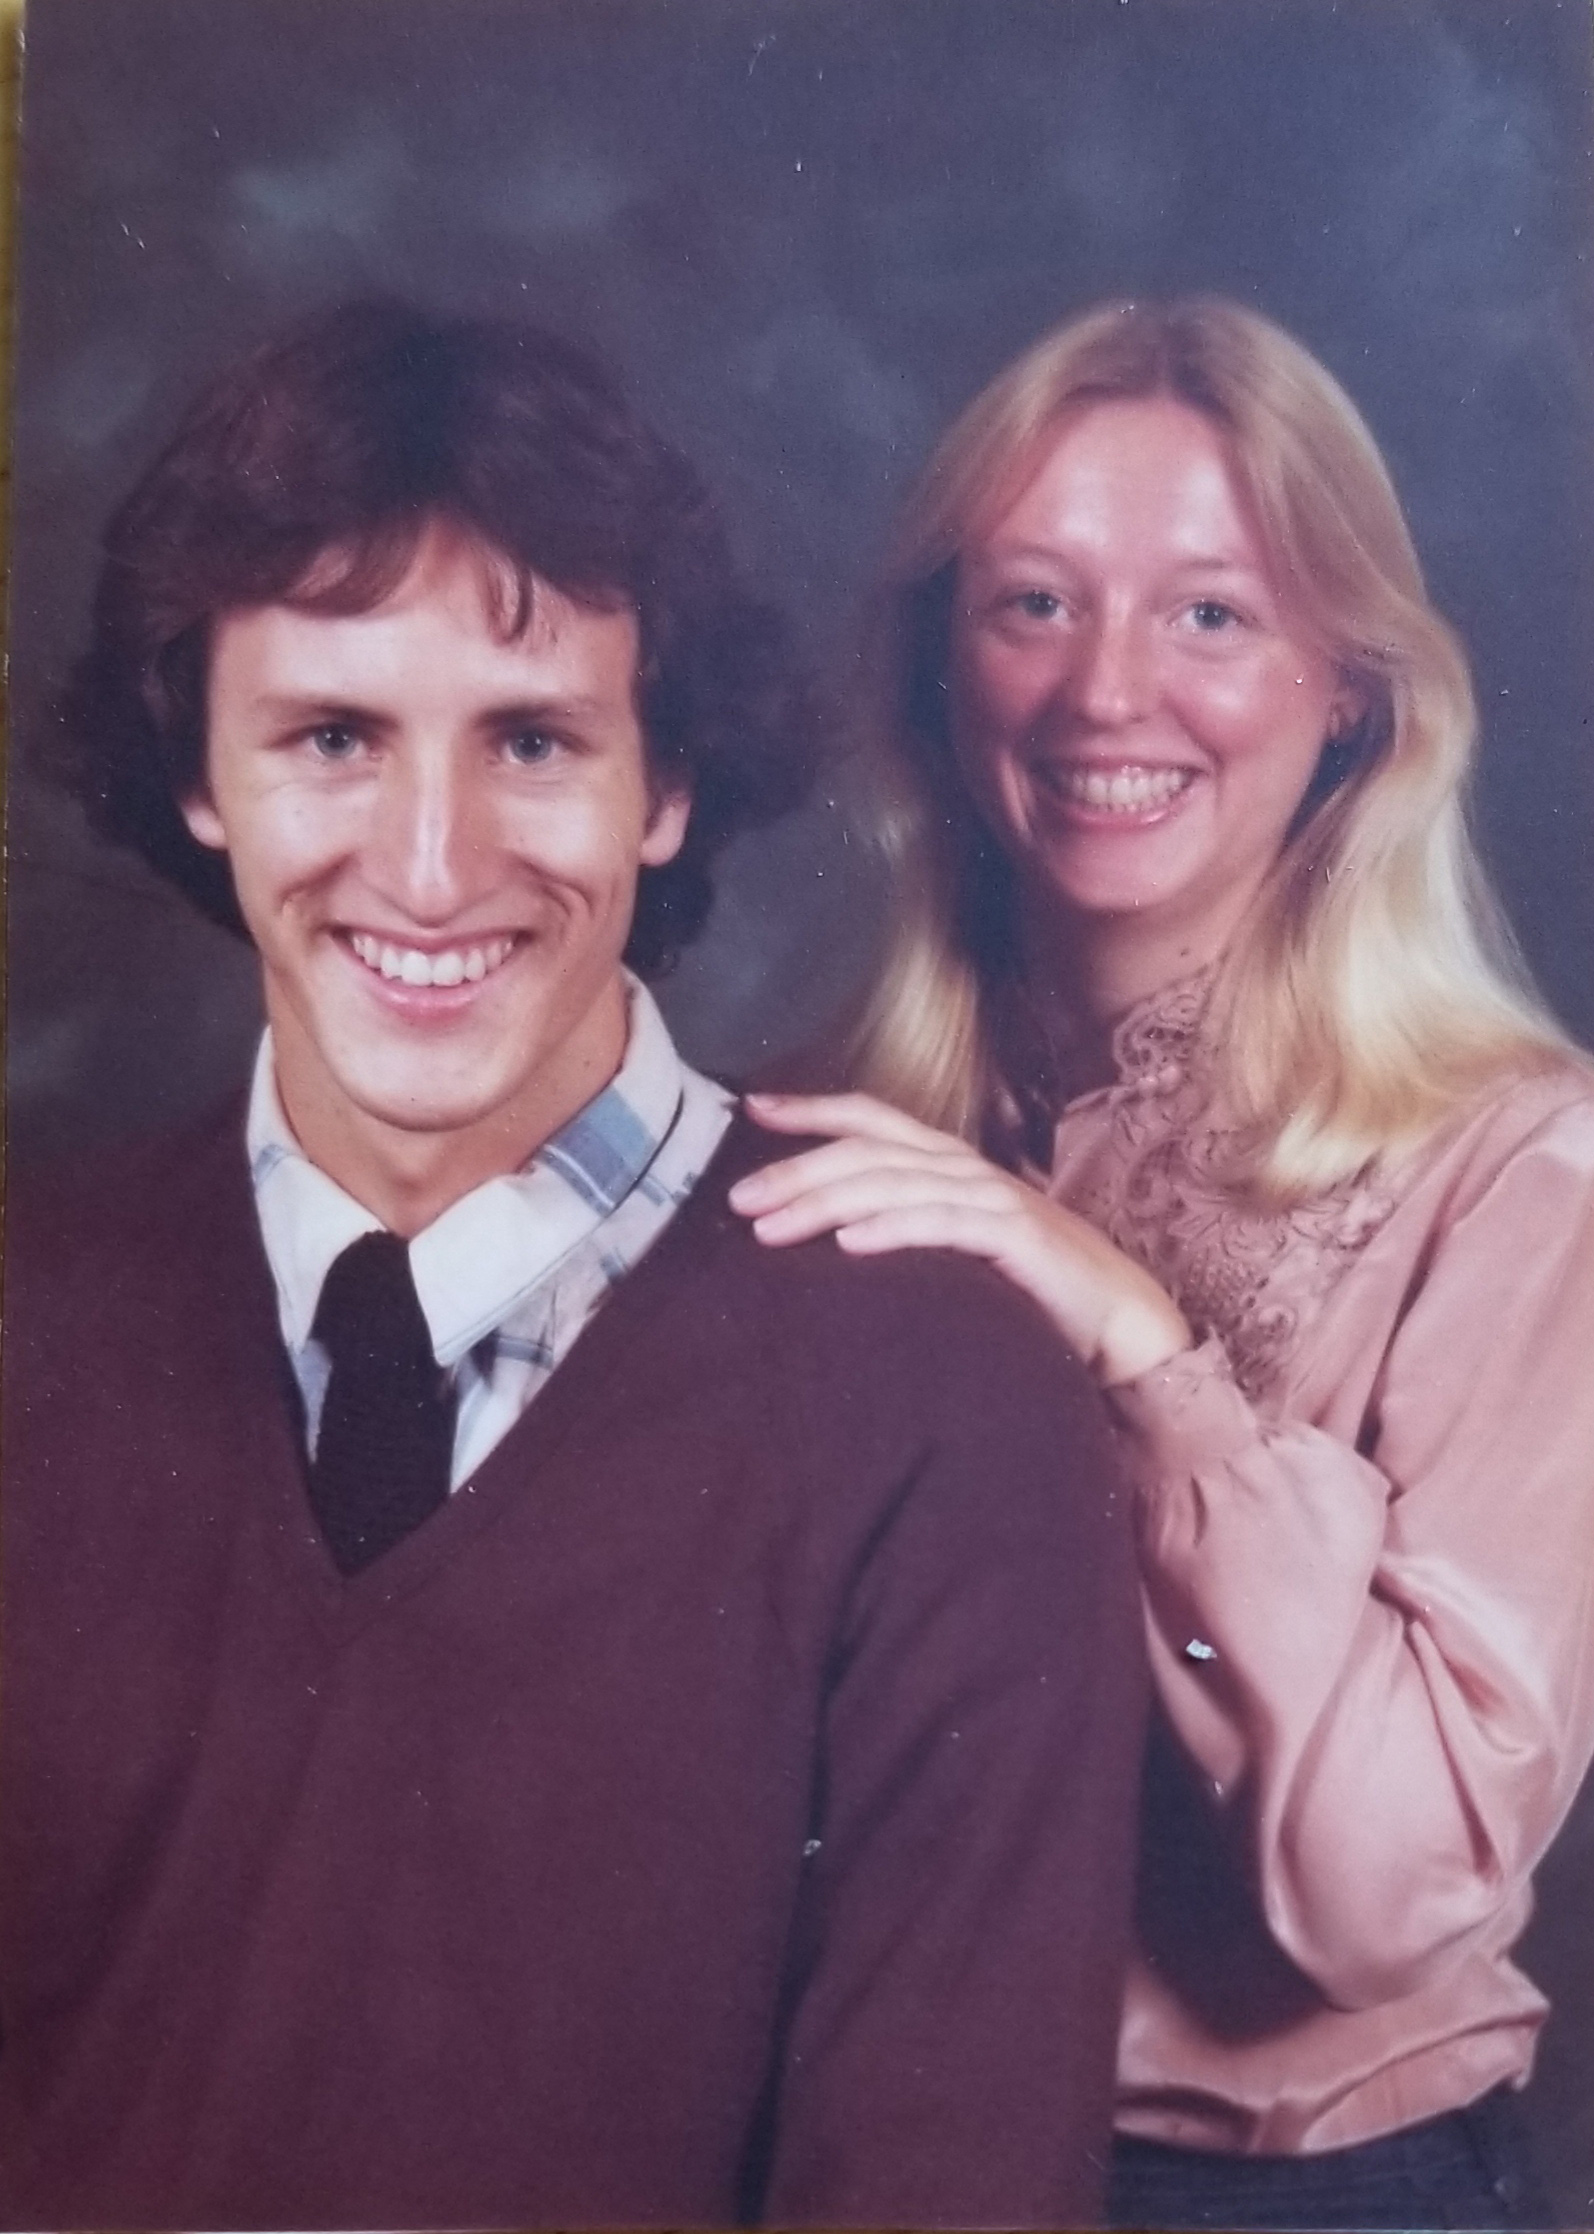 Nancy South (Speech Communication, '81) met her future husband, Matthew (Aerospace Engineering, '83), at Cal Poly in 1979